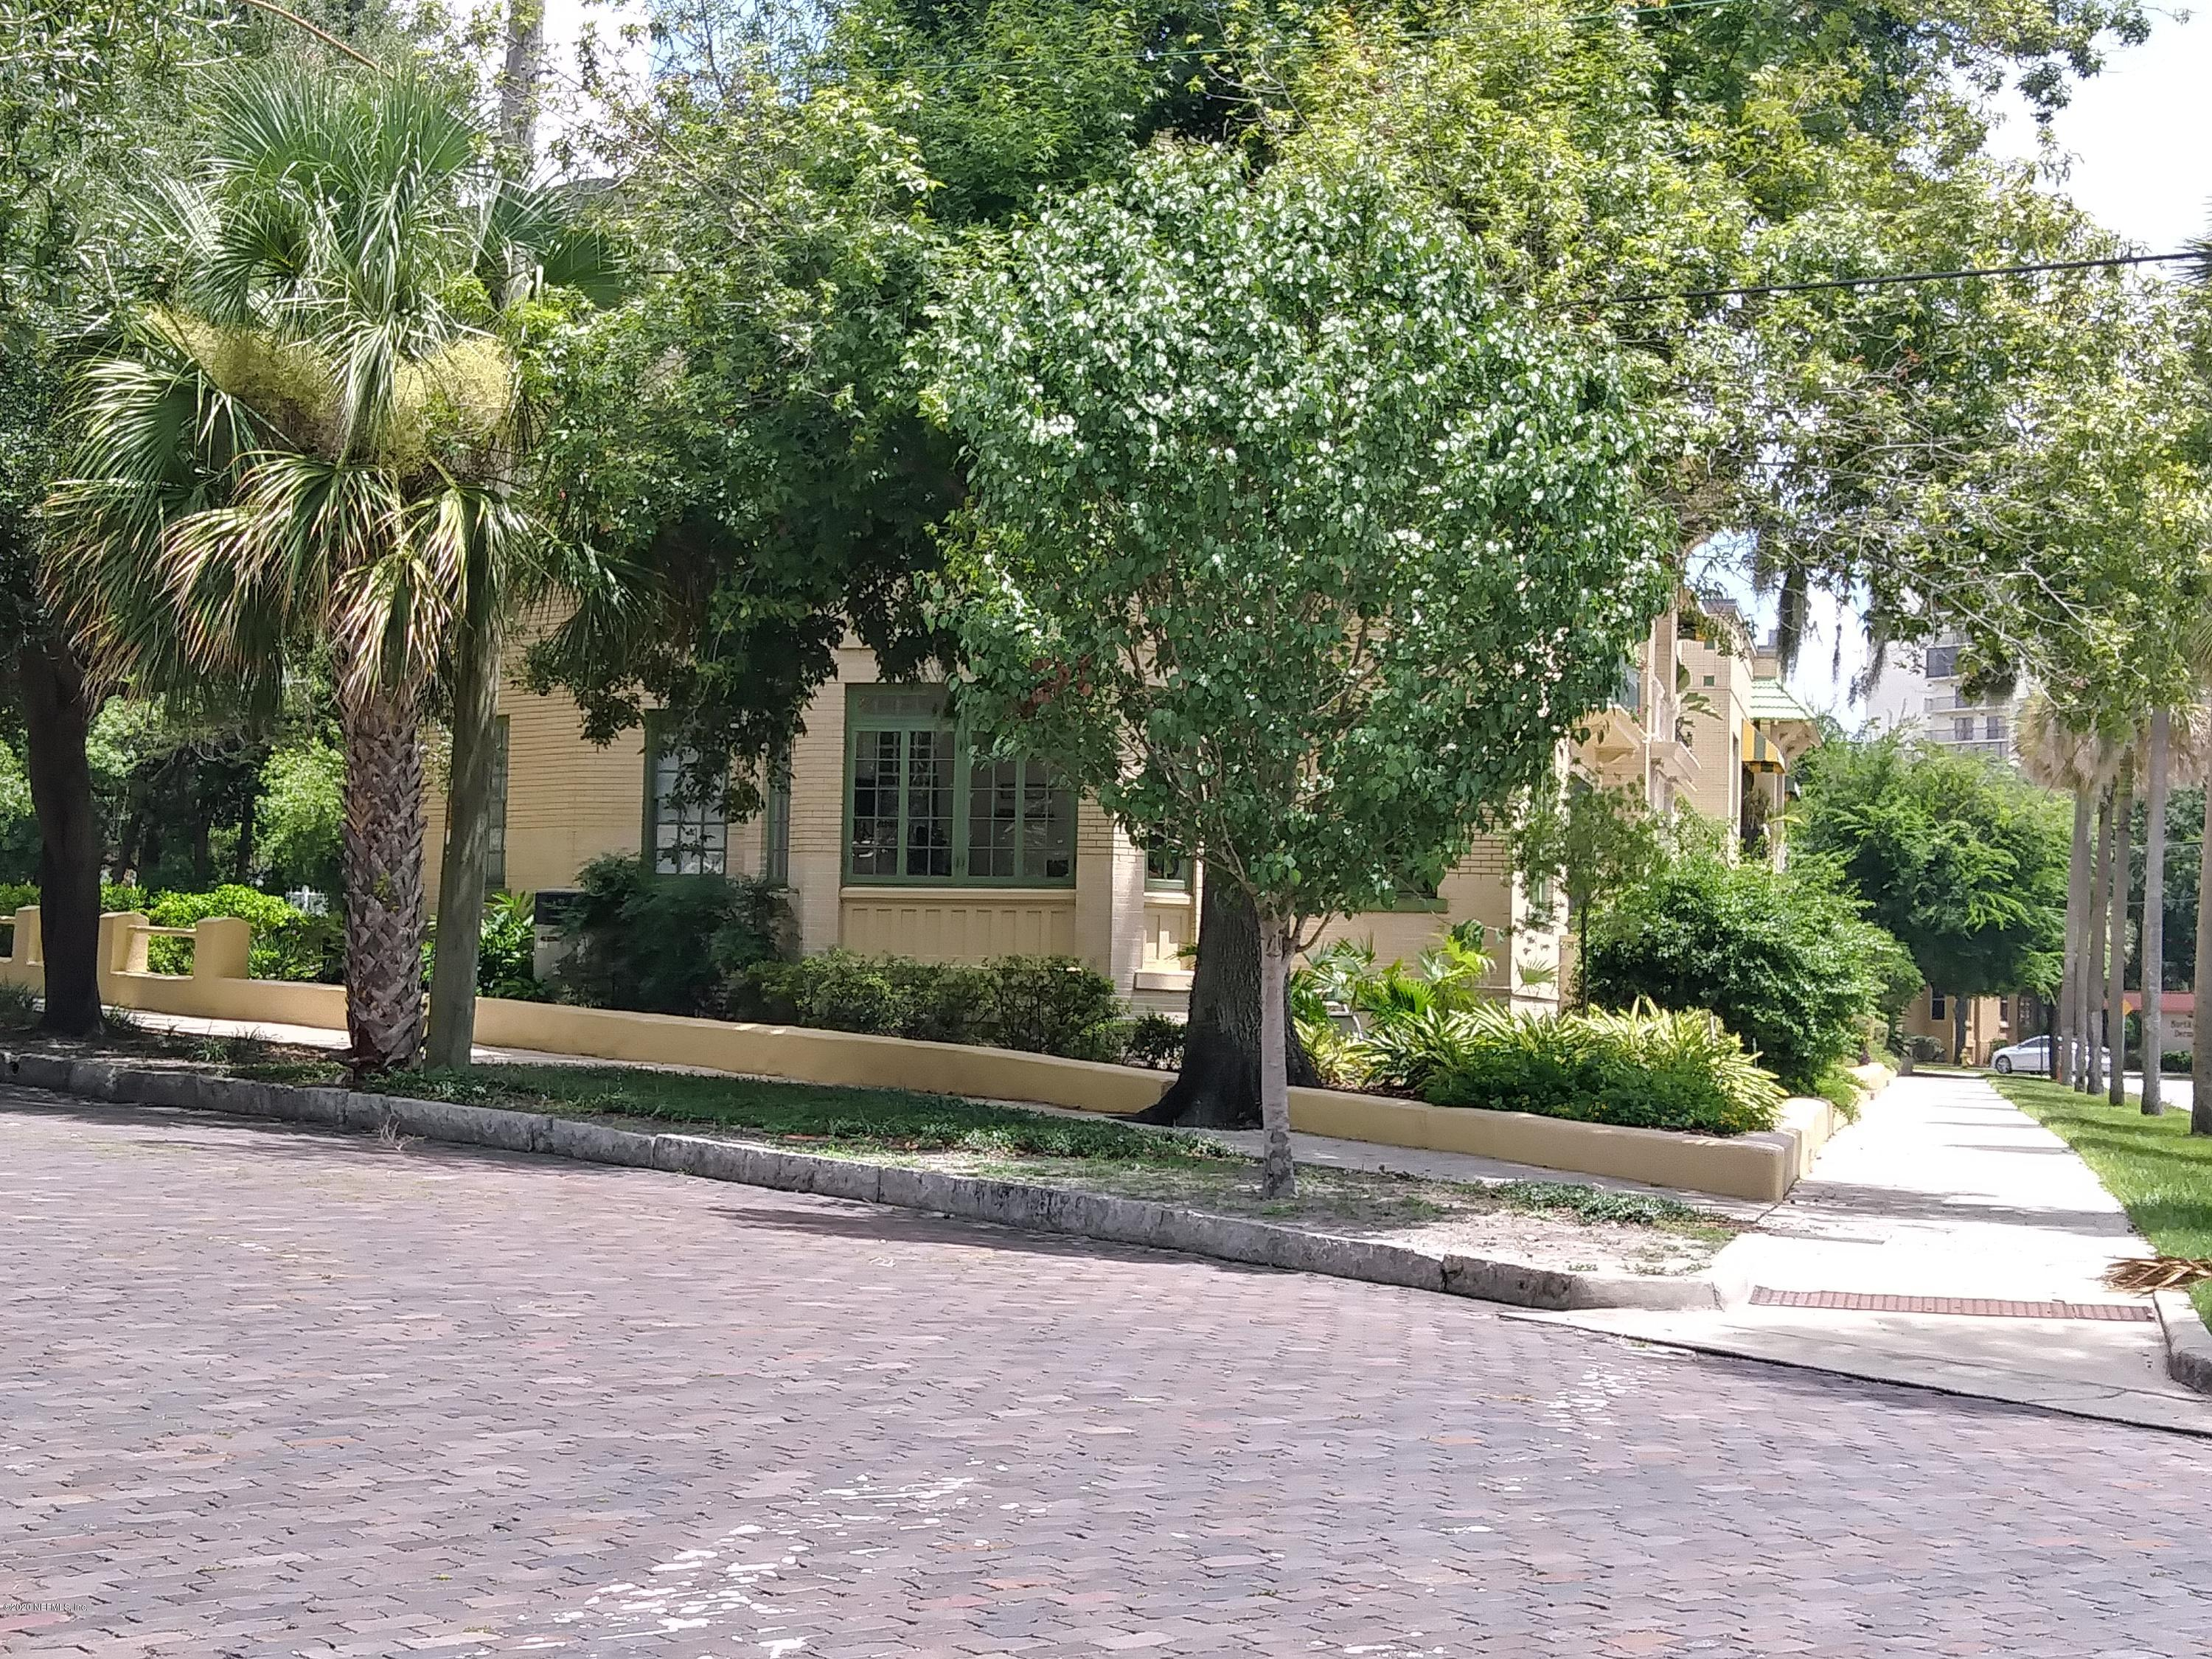 1661 RIVERSIDE, JACKSONVILLE, FLORIDA 32204, 2 Bedrooms Bedrooms, ,2 BathroomsBathrooms,Rental,For Rent,RIVERSIDE,1067429